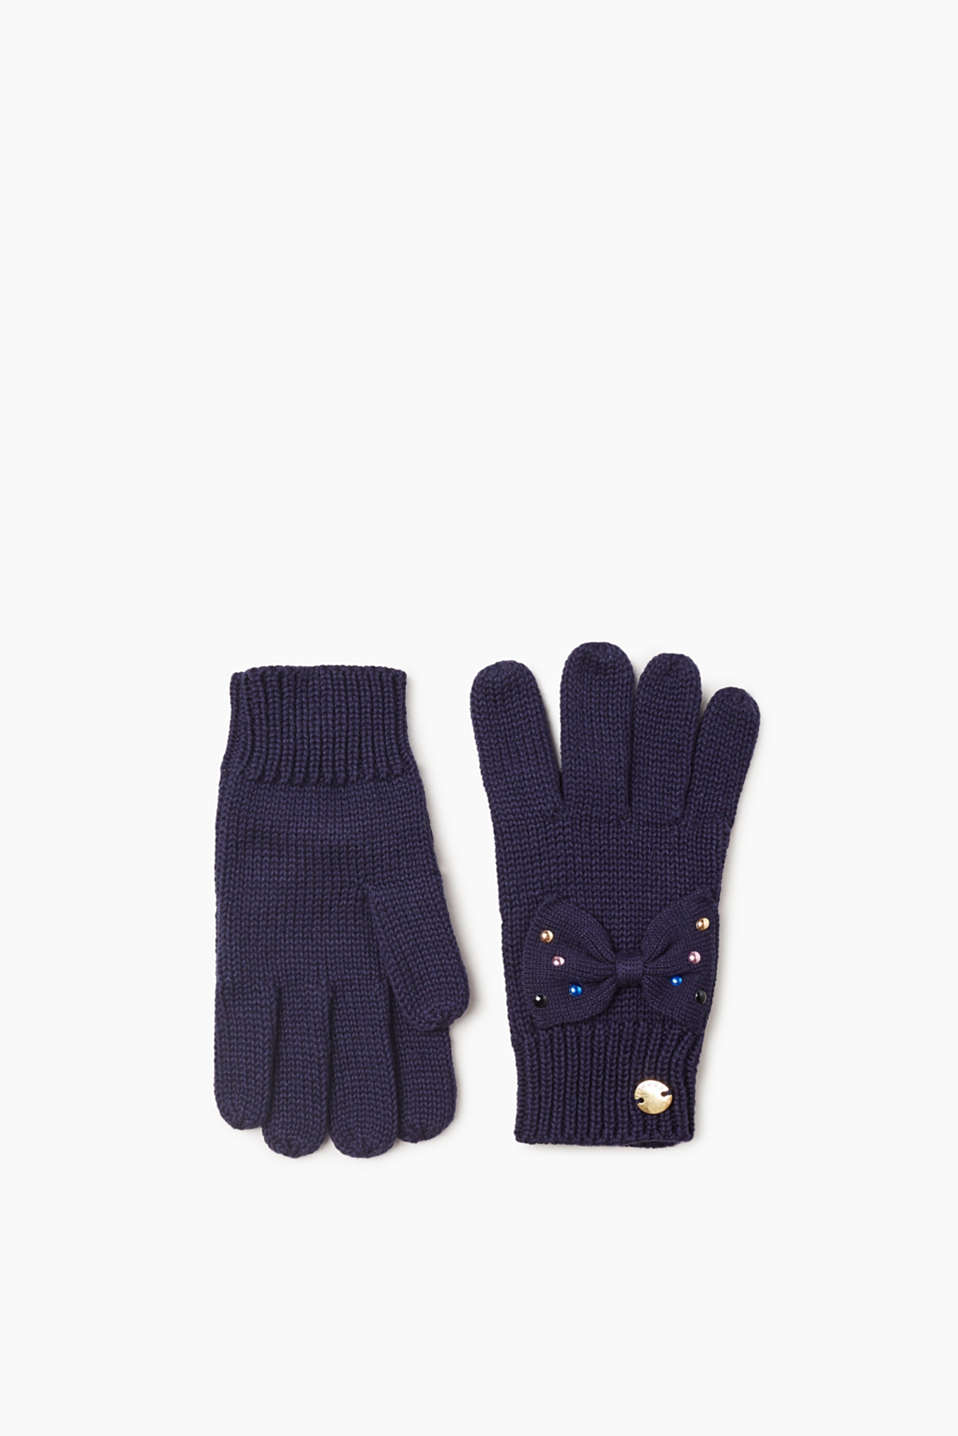 Esprit - Knitted gloves with a bow detail